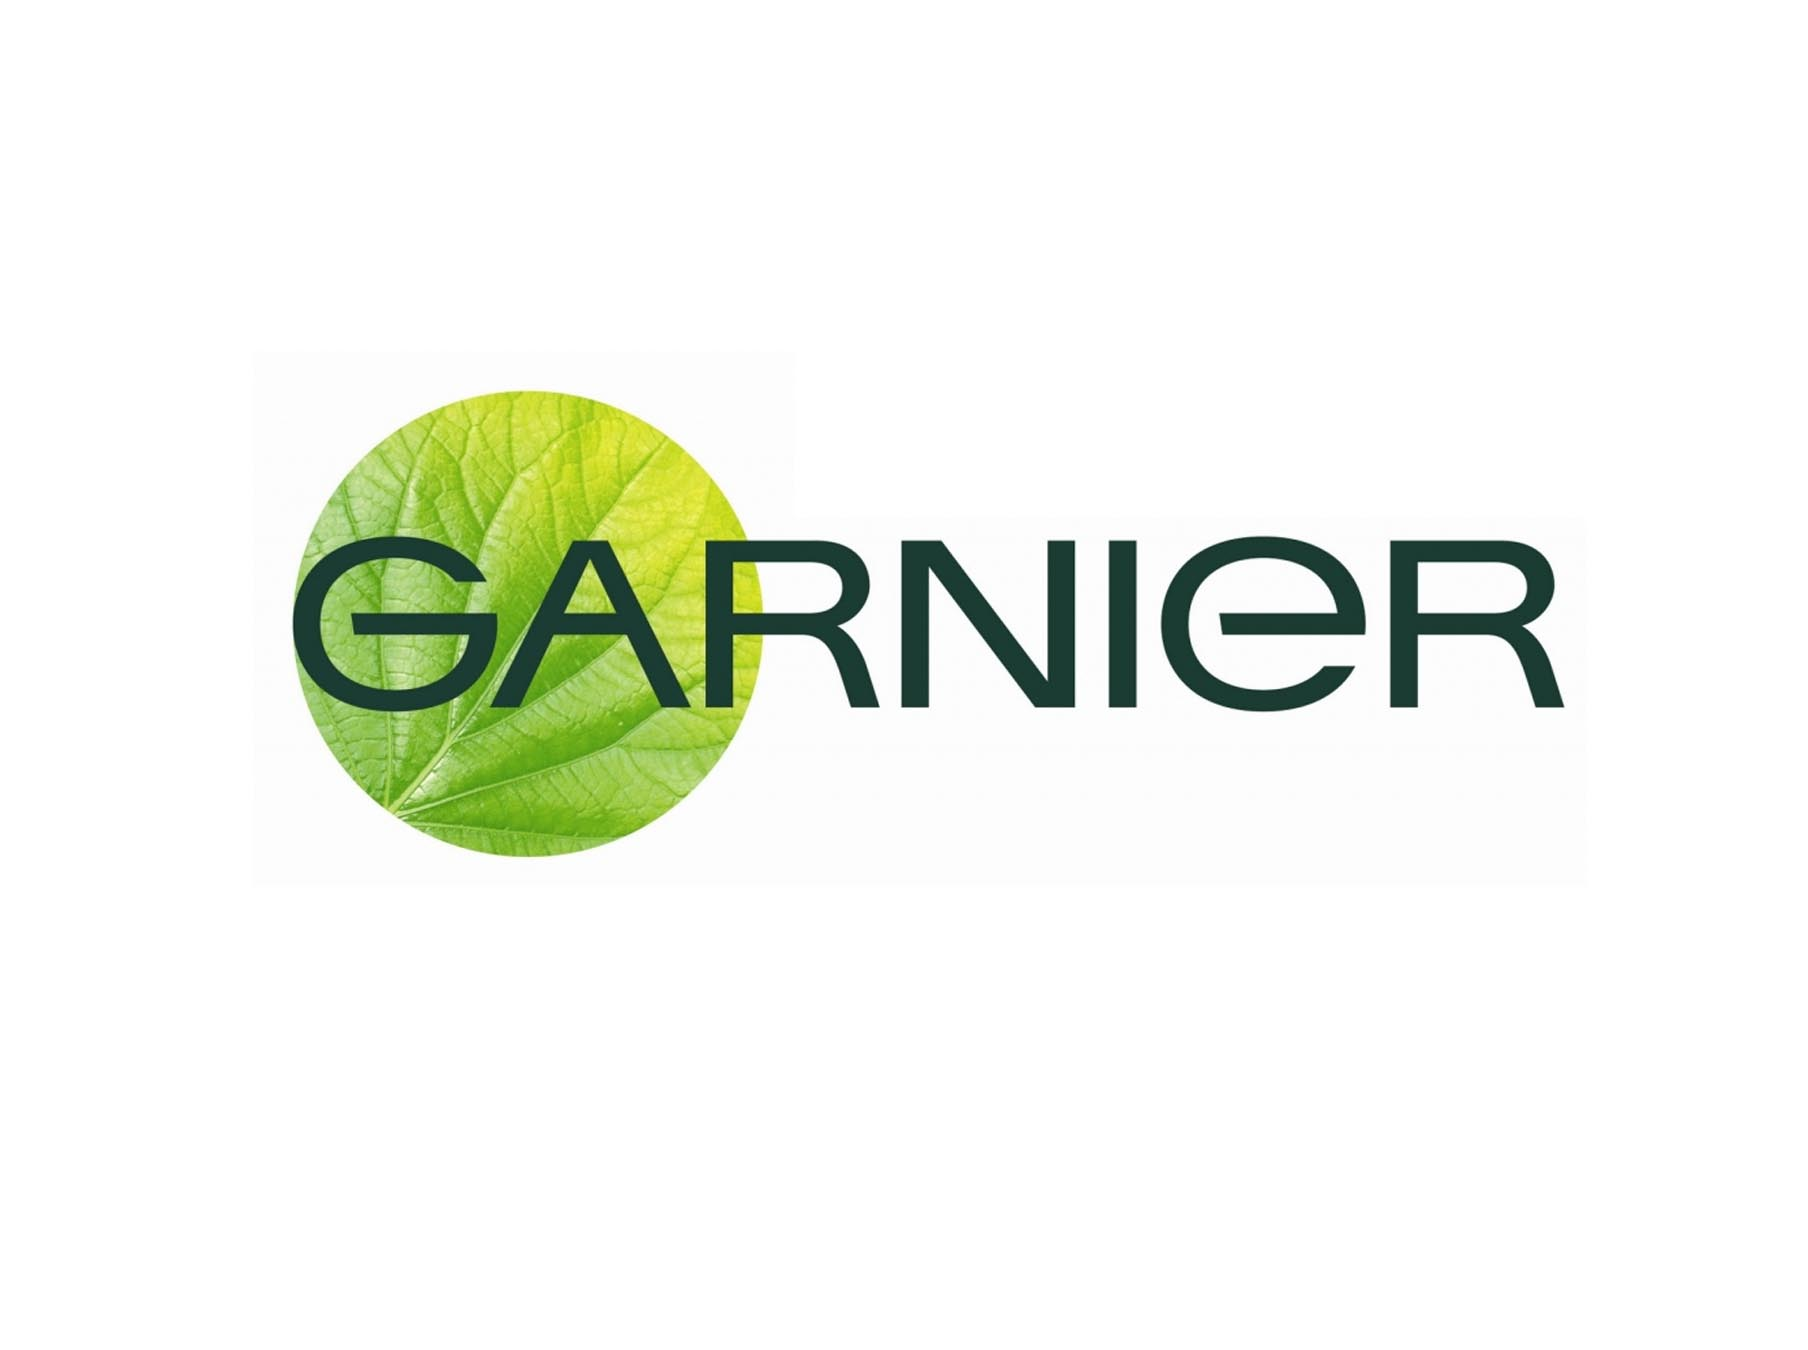 marketing mix of garnier If you are keen to optimise your marketing, this site is for you our passion is powering up people & brandswe help you grow a healthy business or career by increasing your insights into your market, audiences and performance drivers, getting your strategies in-focus and enabling you to lift your impact.